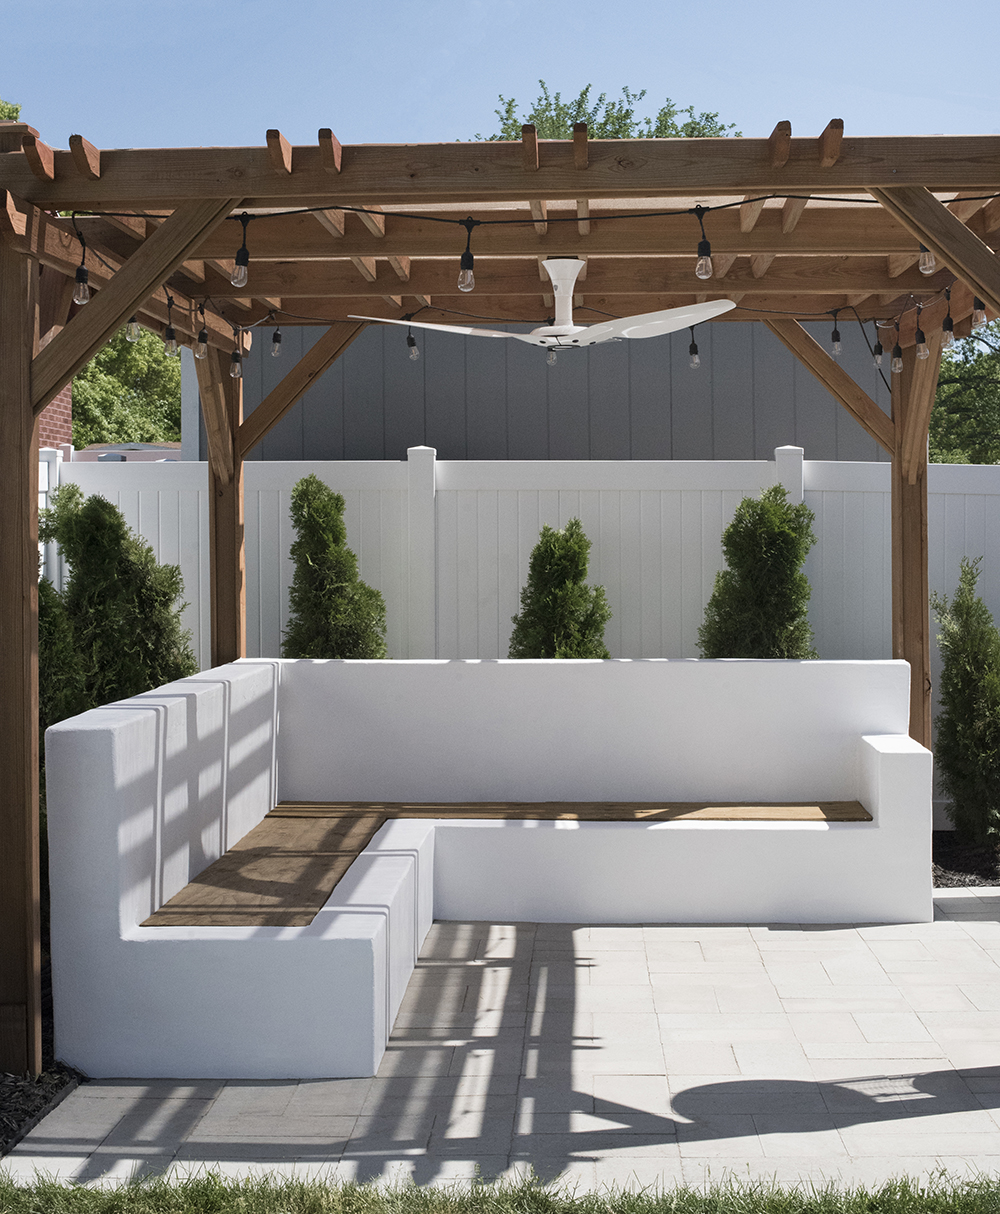 Outdoor Sofa Update - roomfortuesday.com